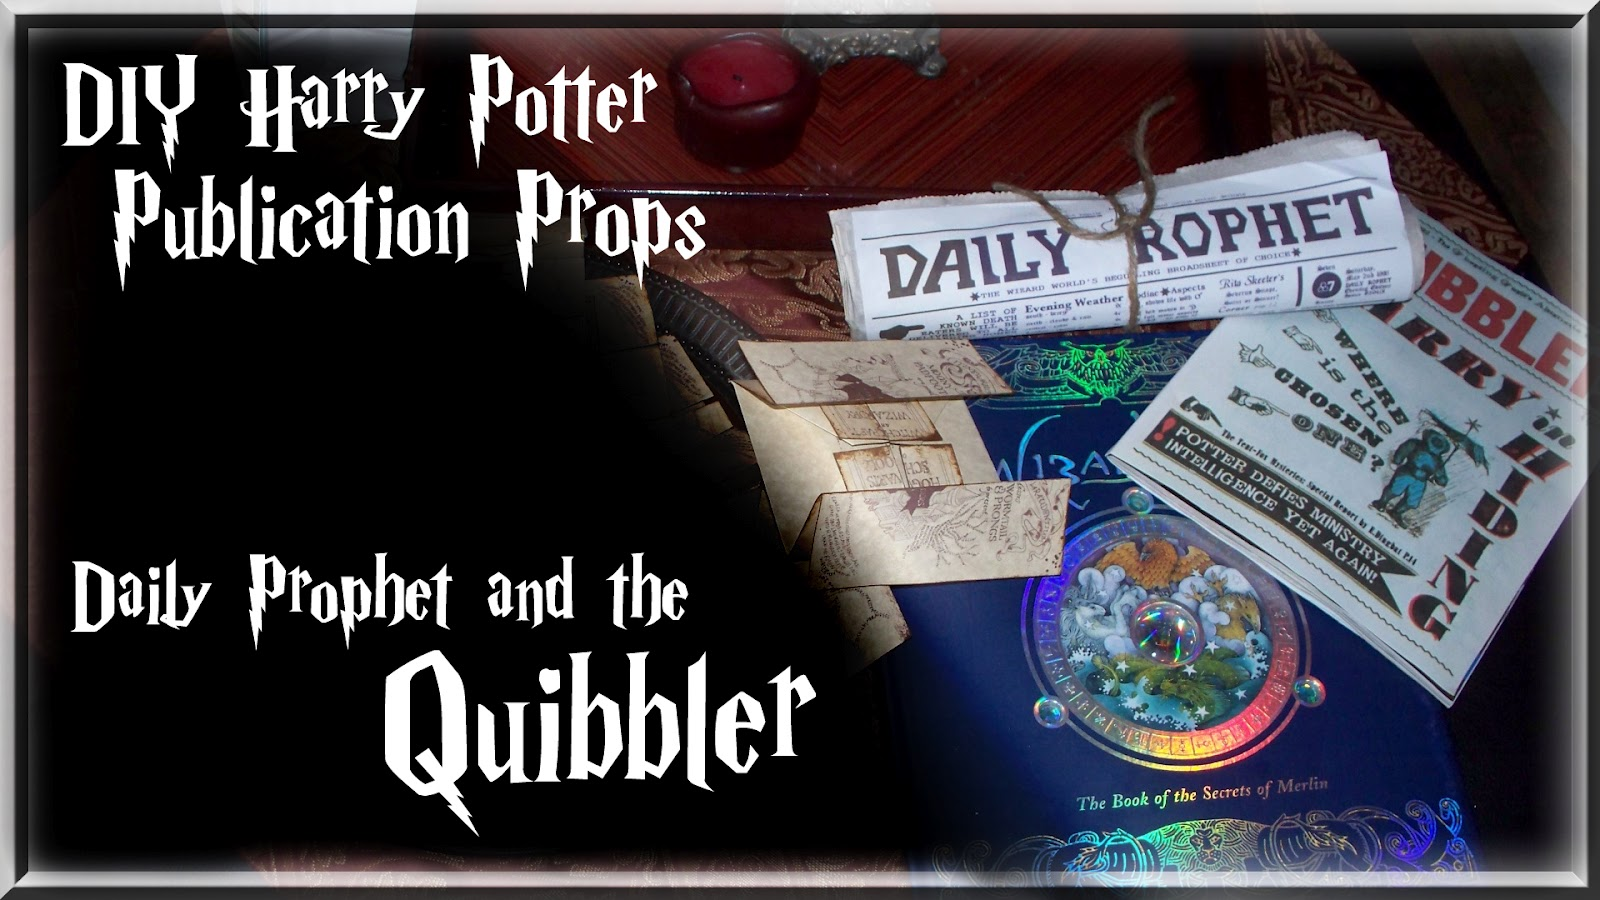 picture about Quibbler Printable named Uniquely Grace: Harry Potter Newsletter Props - Quibbler